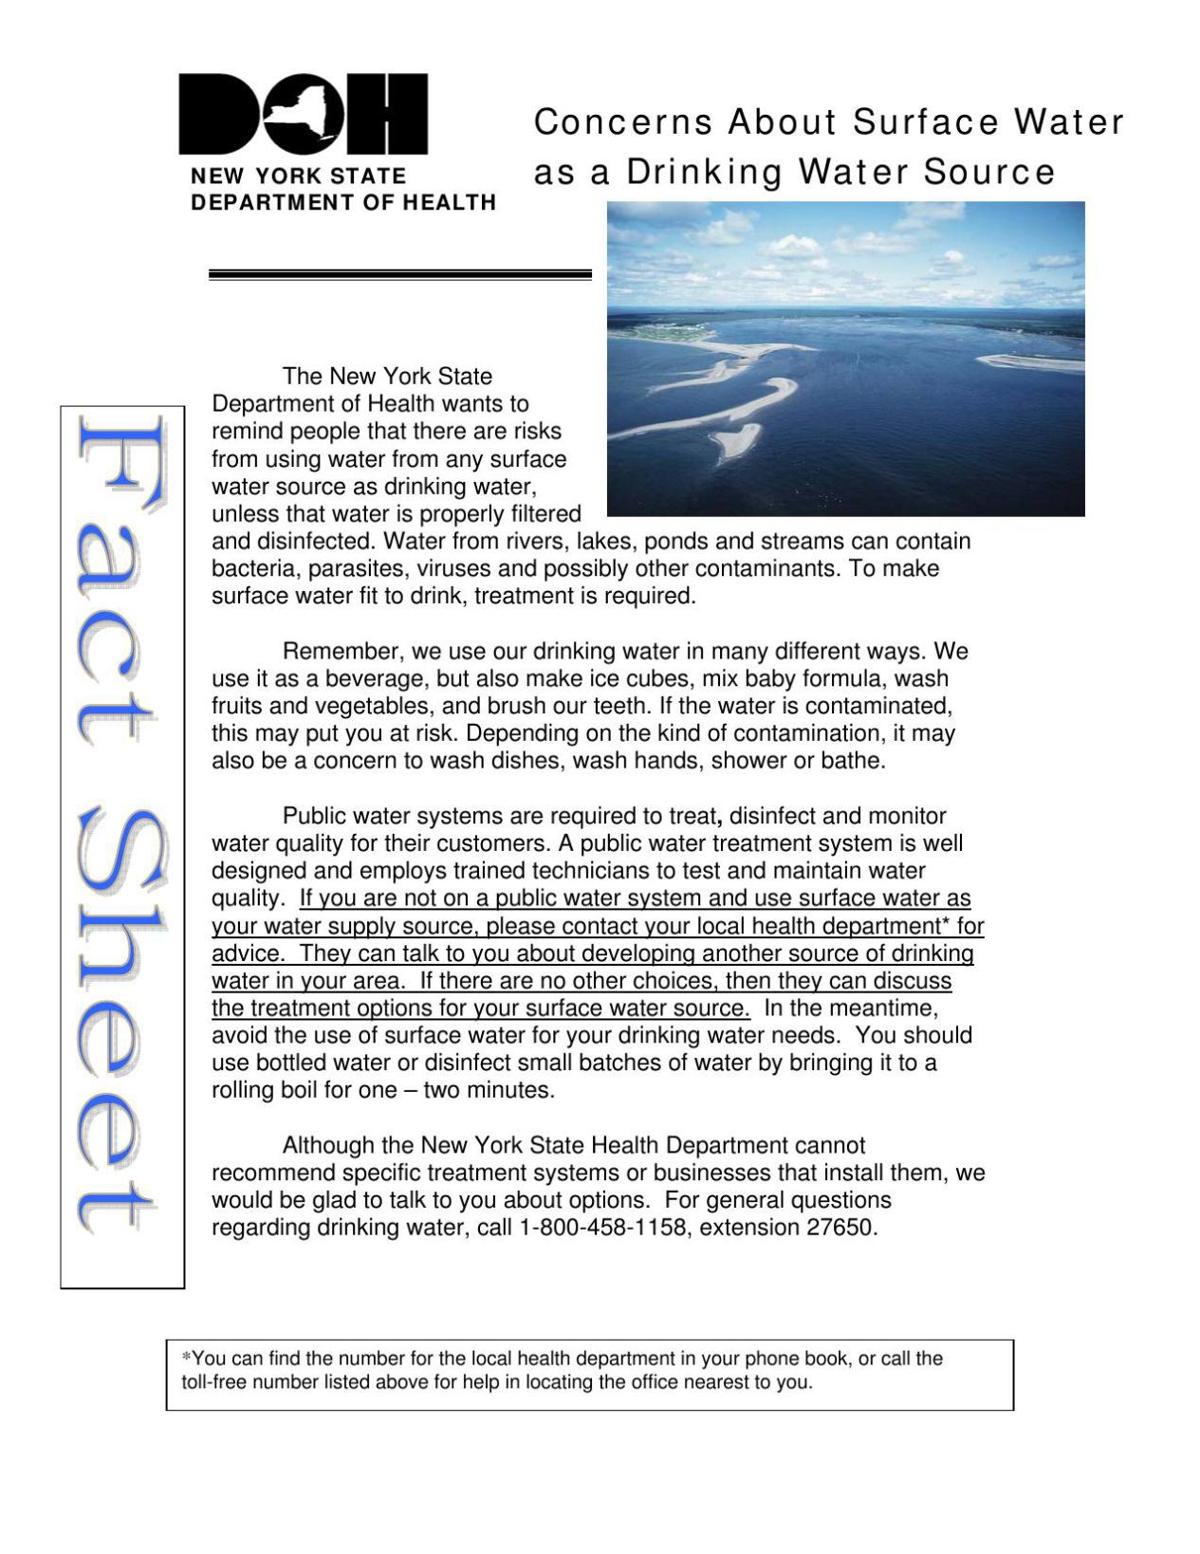 Concerns About Surface Water as a Drinking Water Source